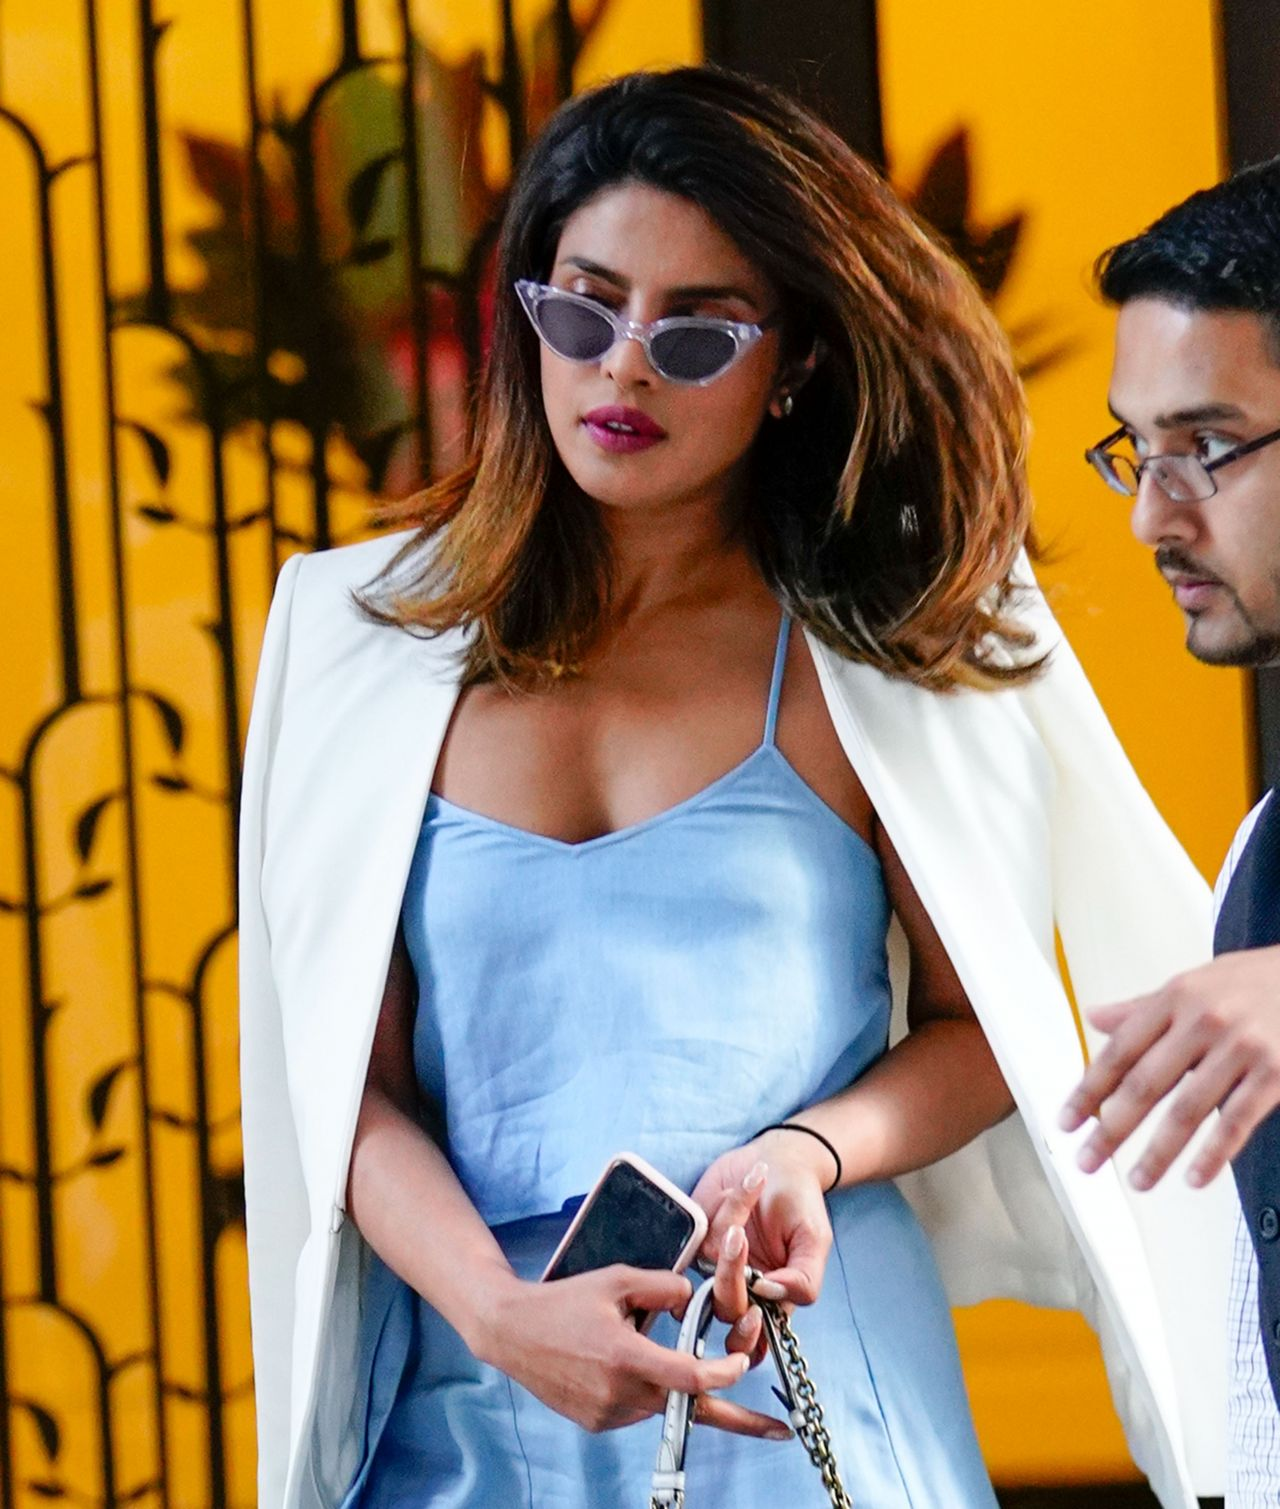 http://celebmafia.com/wp-content/uploads/2018/06/priyanka-chopra-in-a-blue-dress-new-york-city-06-12-2018-13.jpg